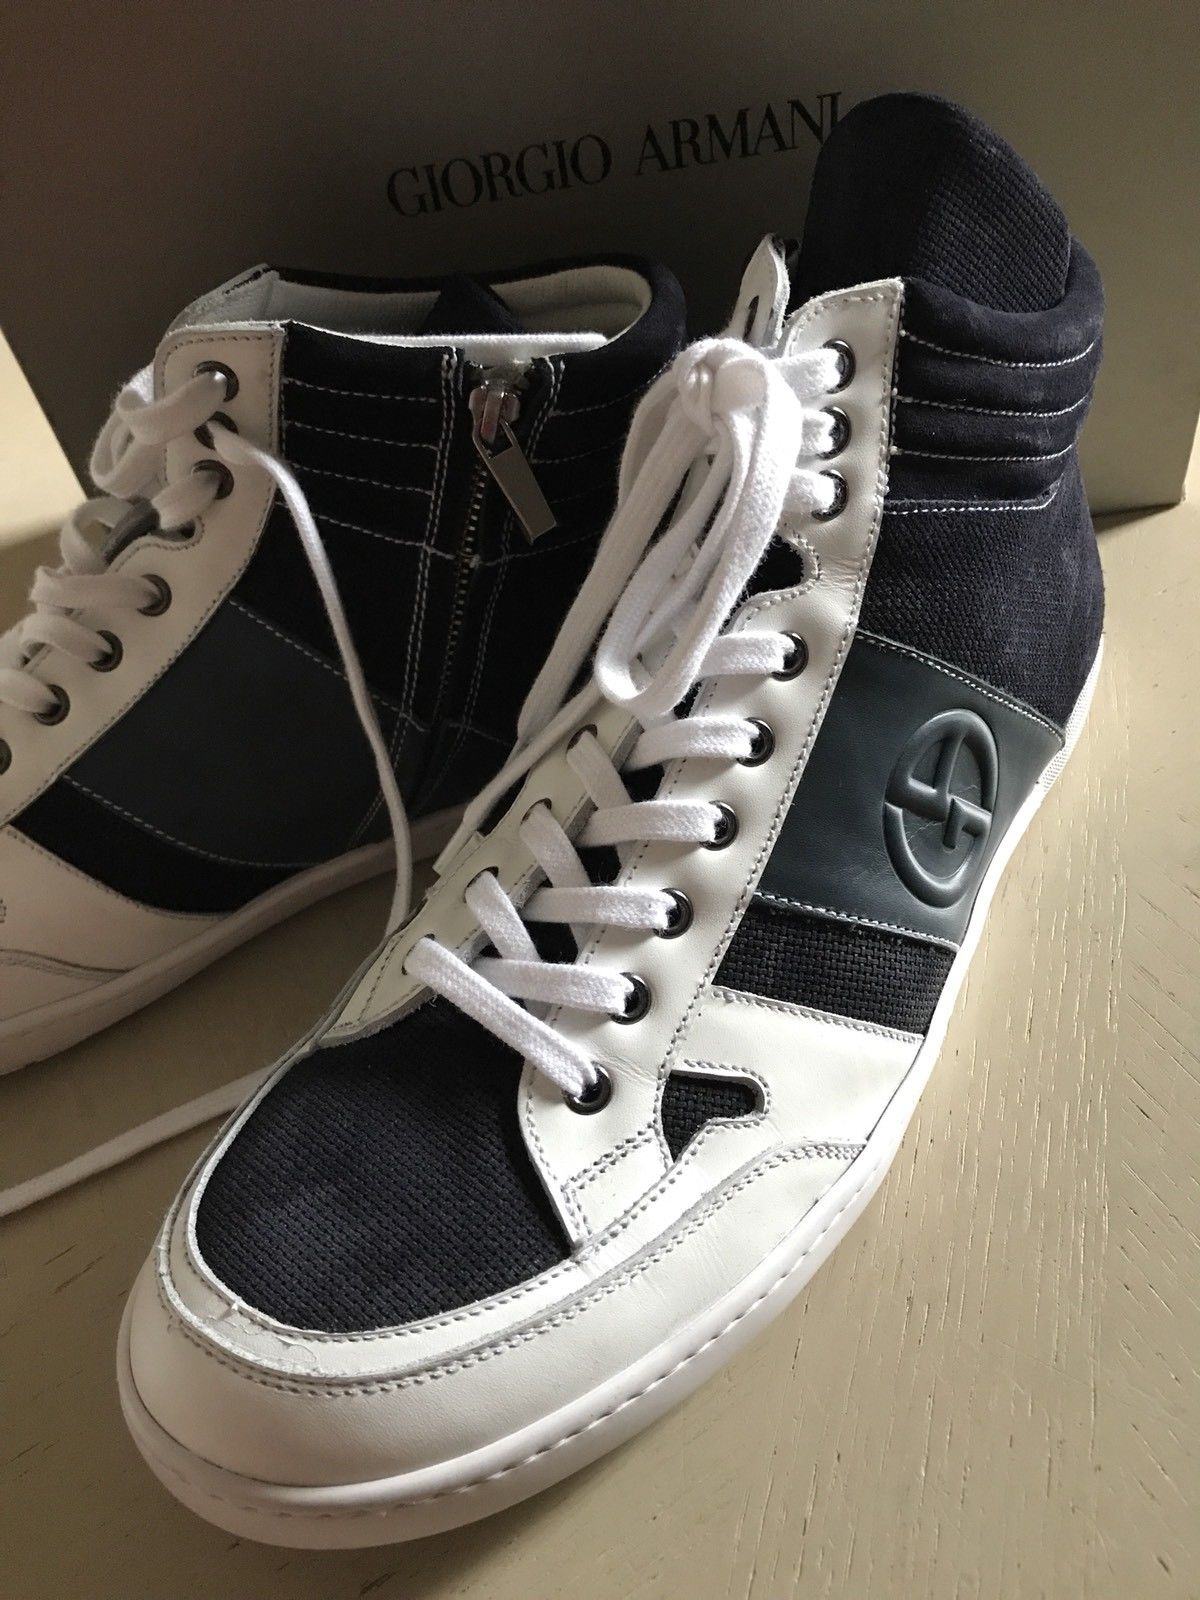 New $795 Giorgio Armani Mens Leather High Top Sneakers Black/White 12 US  X2Z005 - BAYSUPERSTORE